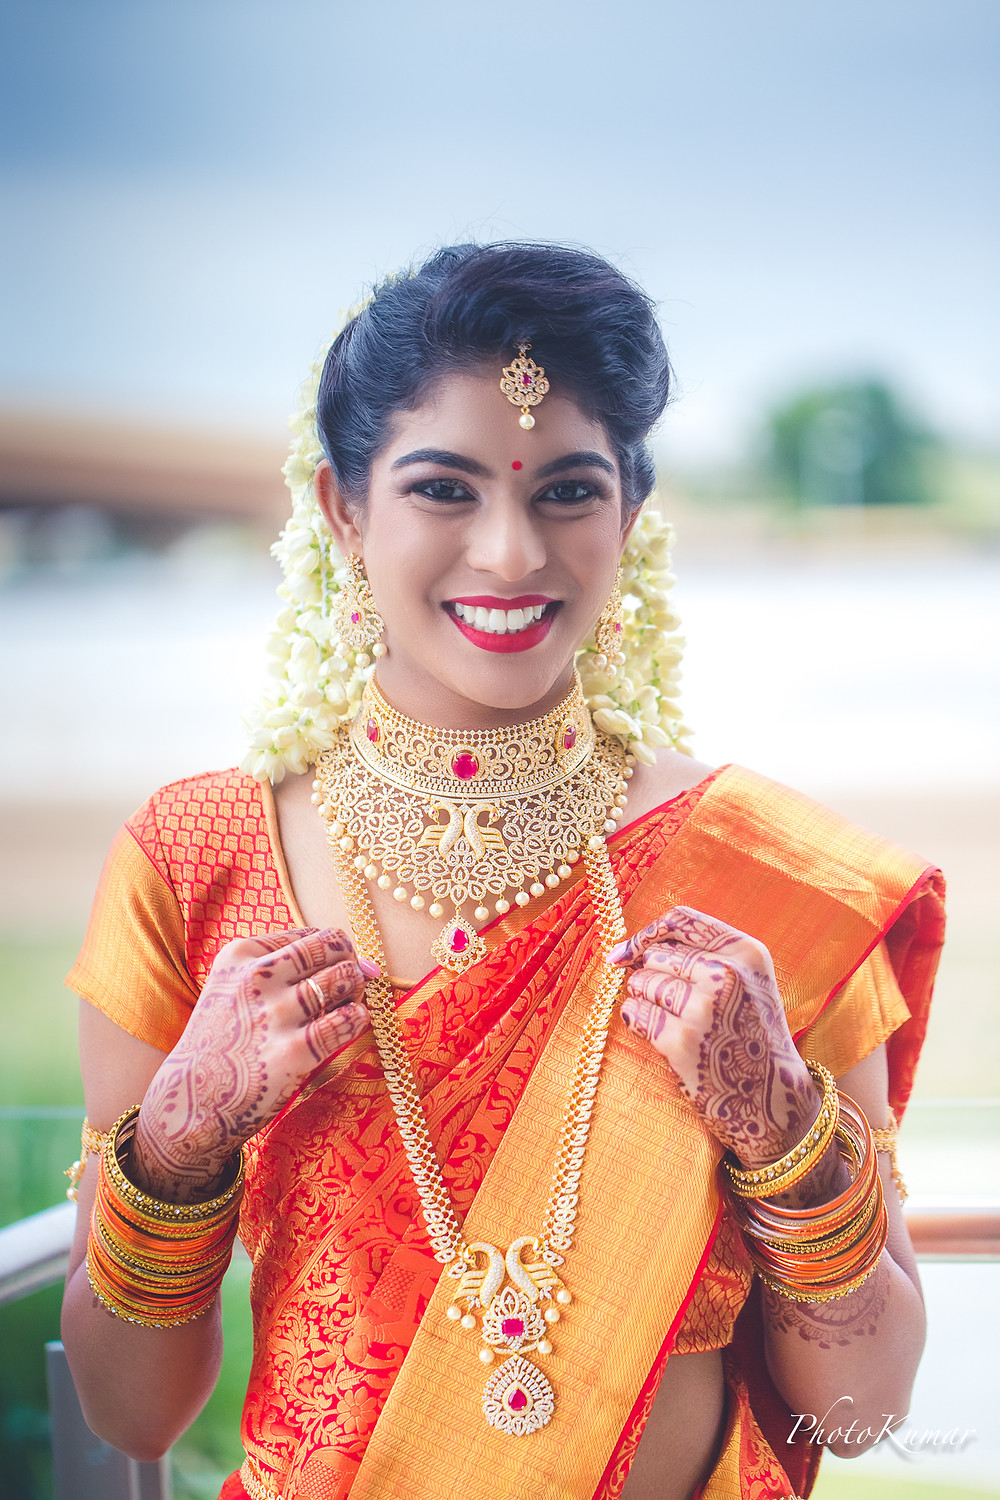 Tamil Bride- Makeup